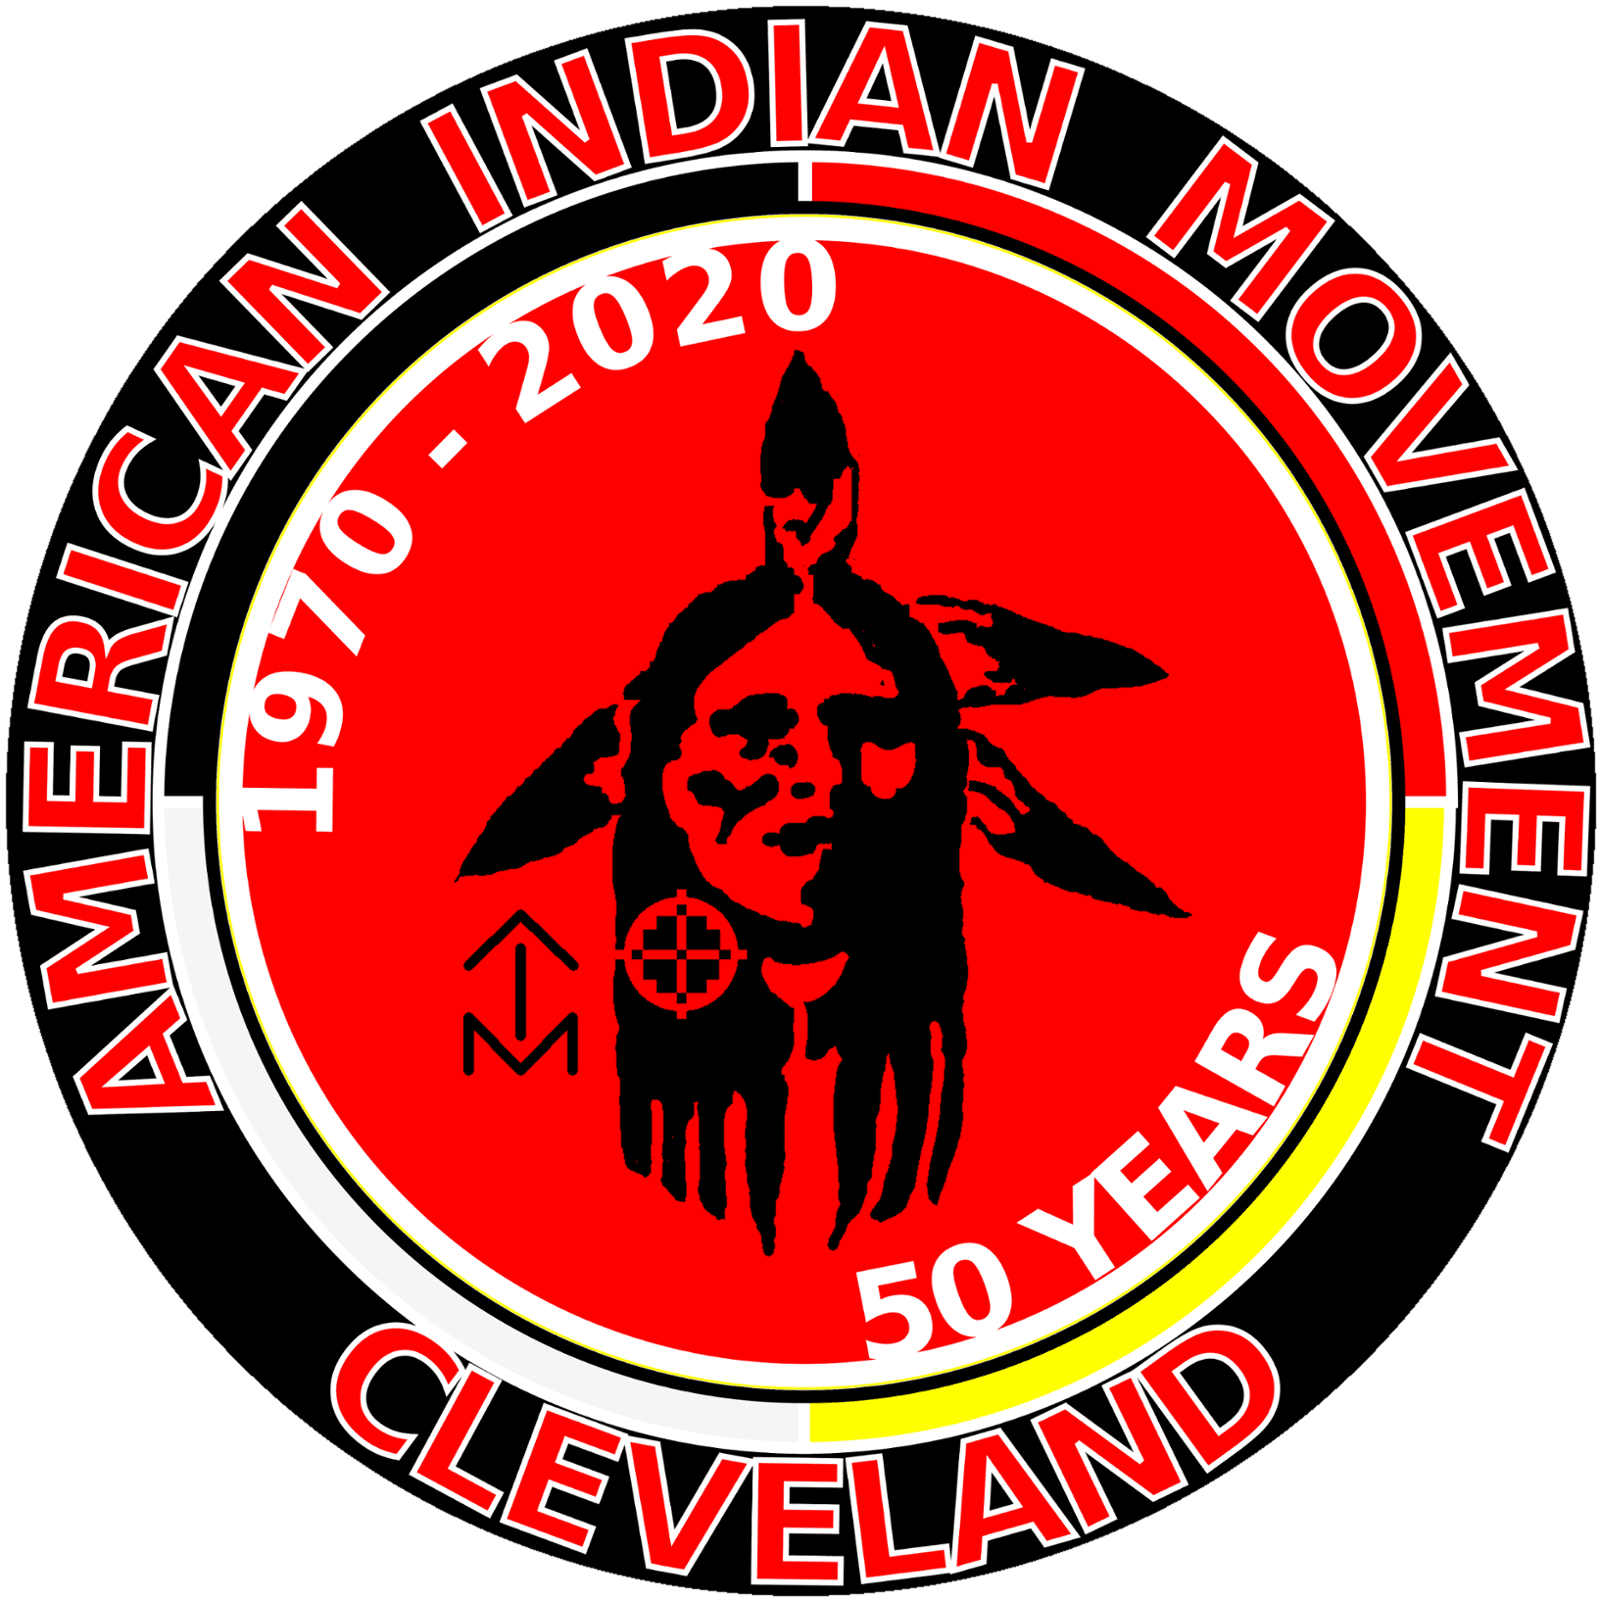 Cleveland American Indian Movement 1970-2020 50 years